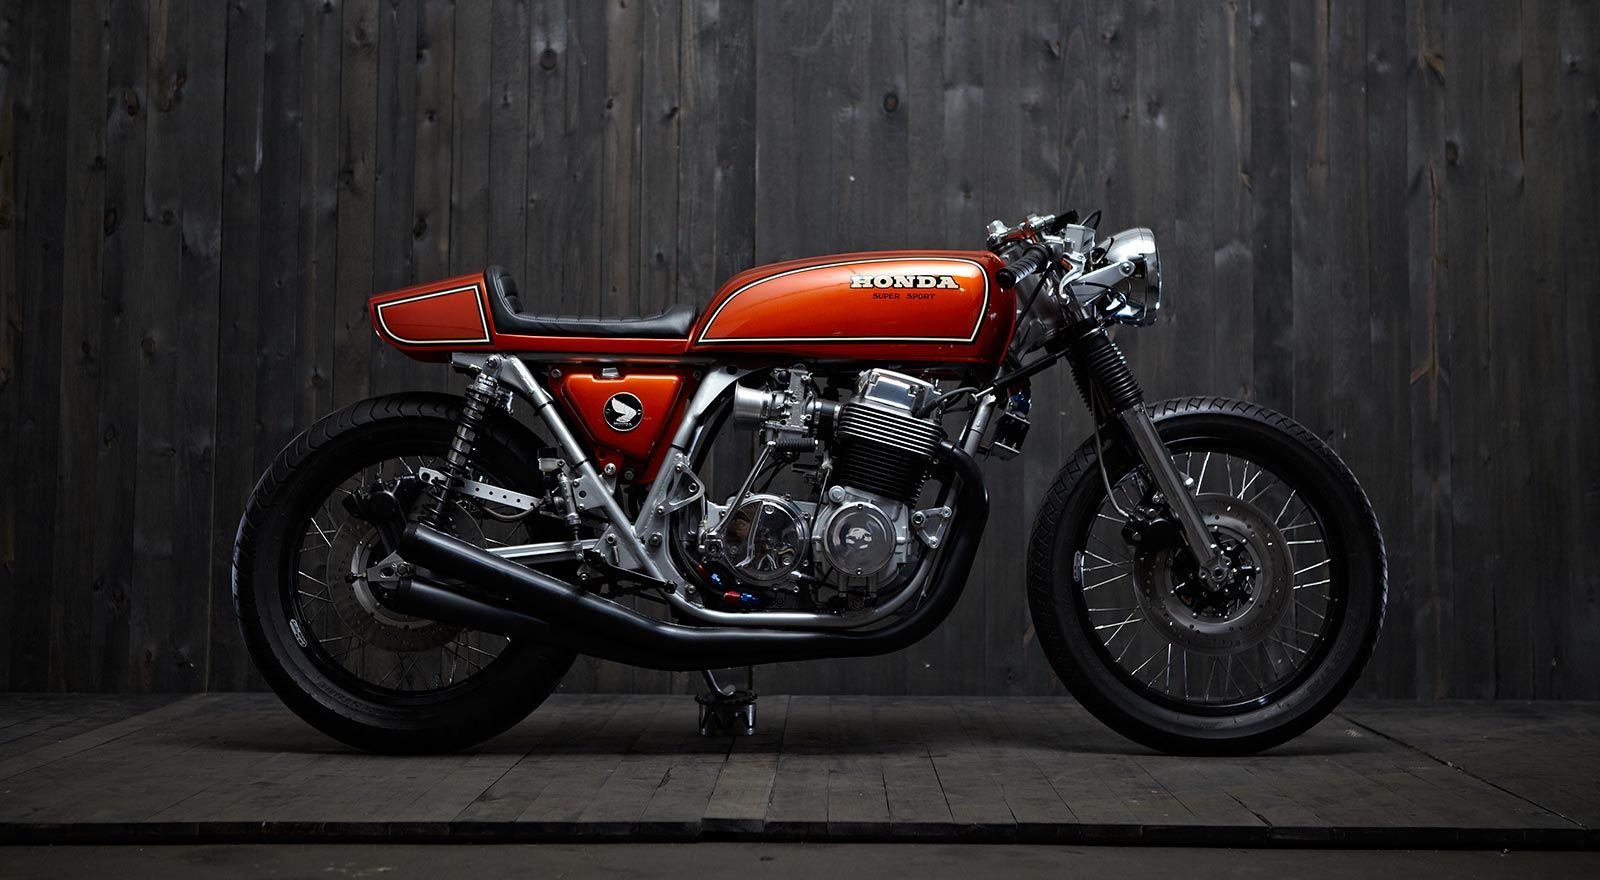 1975 honda cb750 super sporttwinline motorcycles | motorcycles